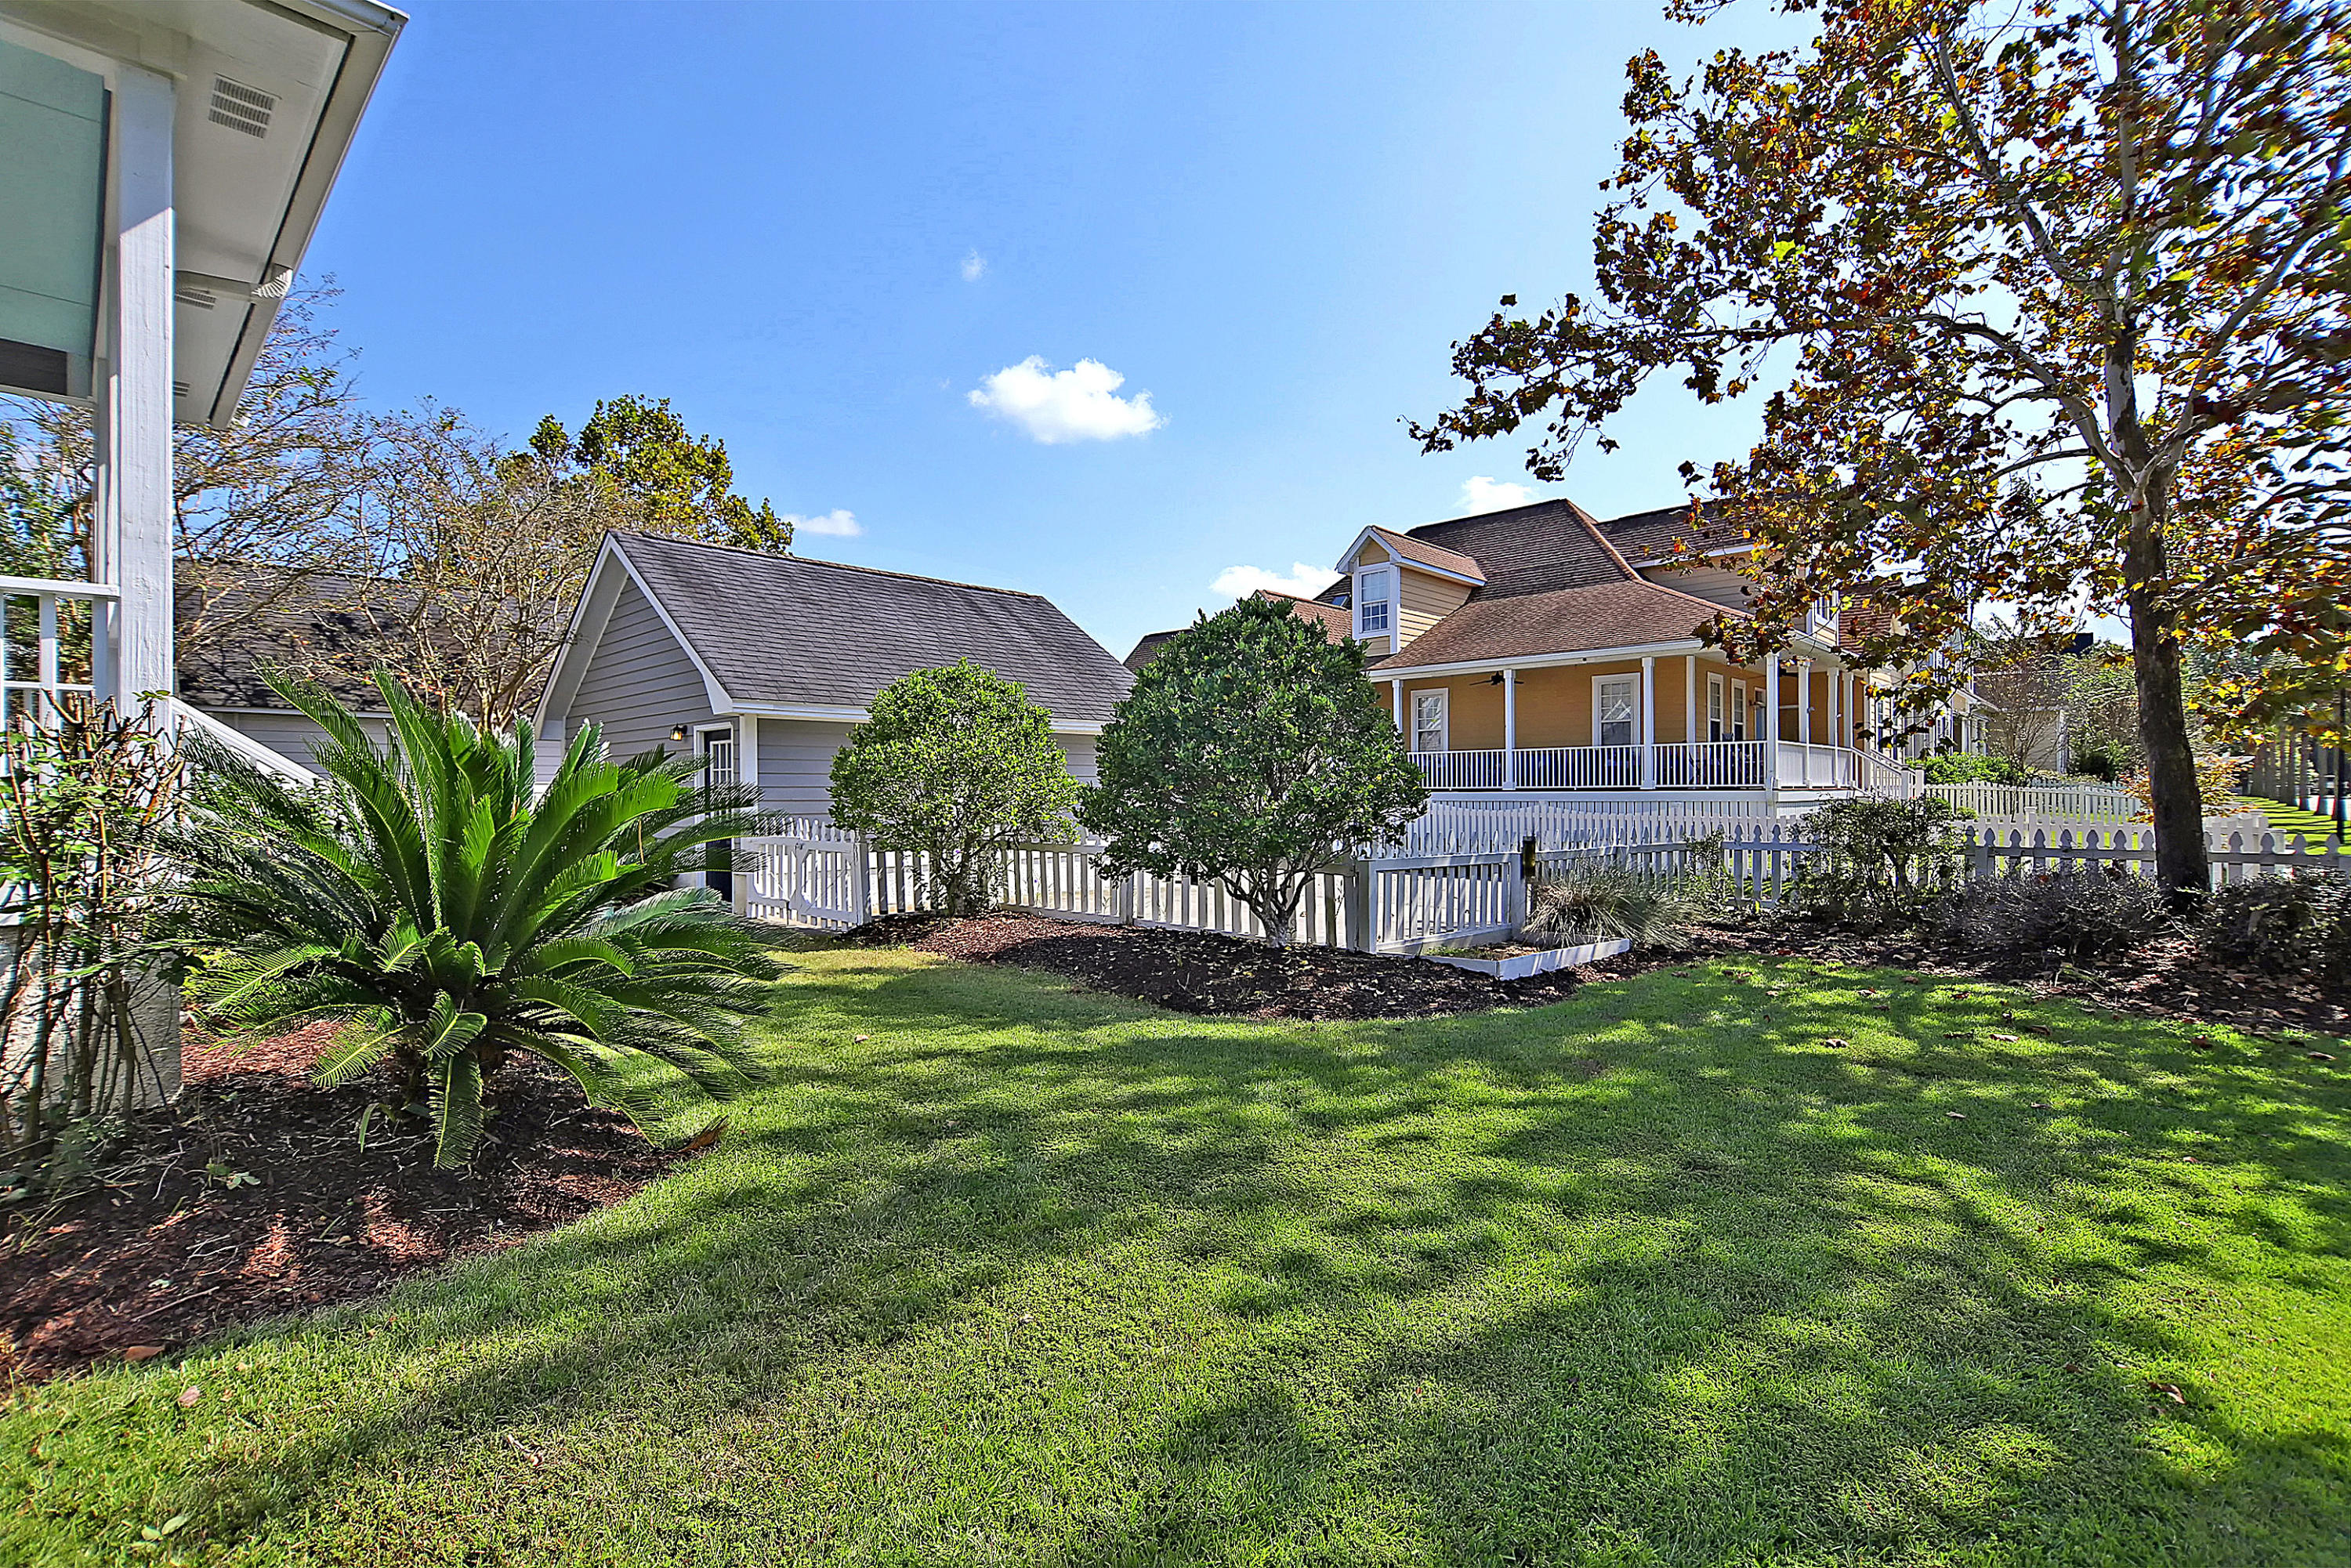 Rivertowne On The Wando Homes For Sale - 2520 Rivertowne, Mount Pleasant, SC - 23